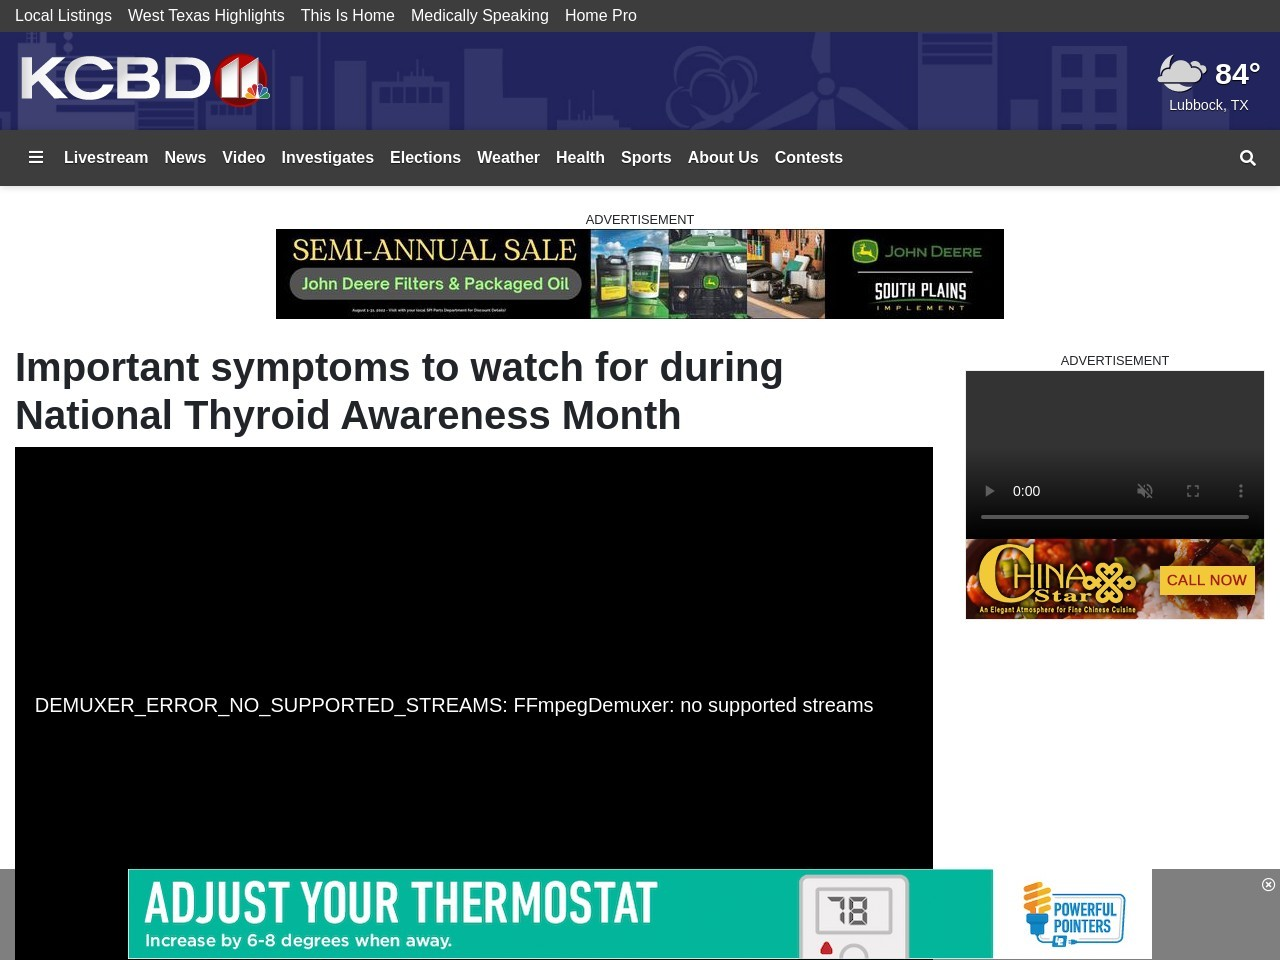 Important symptoms to watch for during National Thyroid Awareness Month